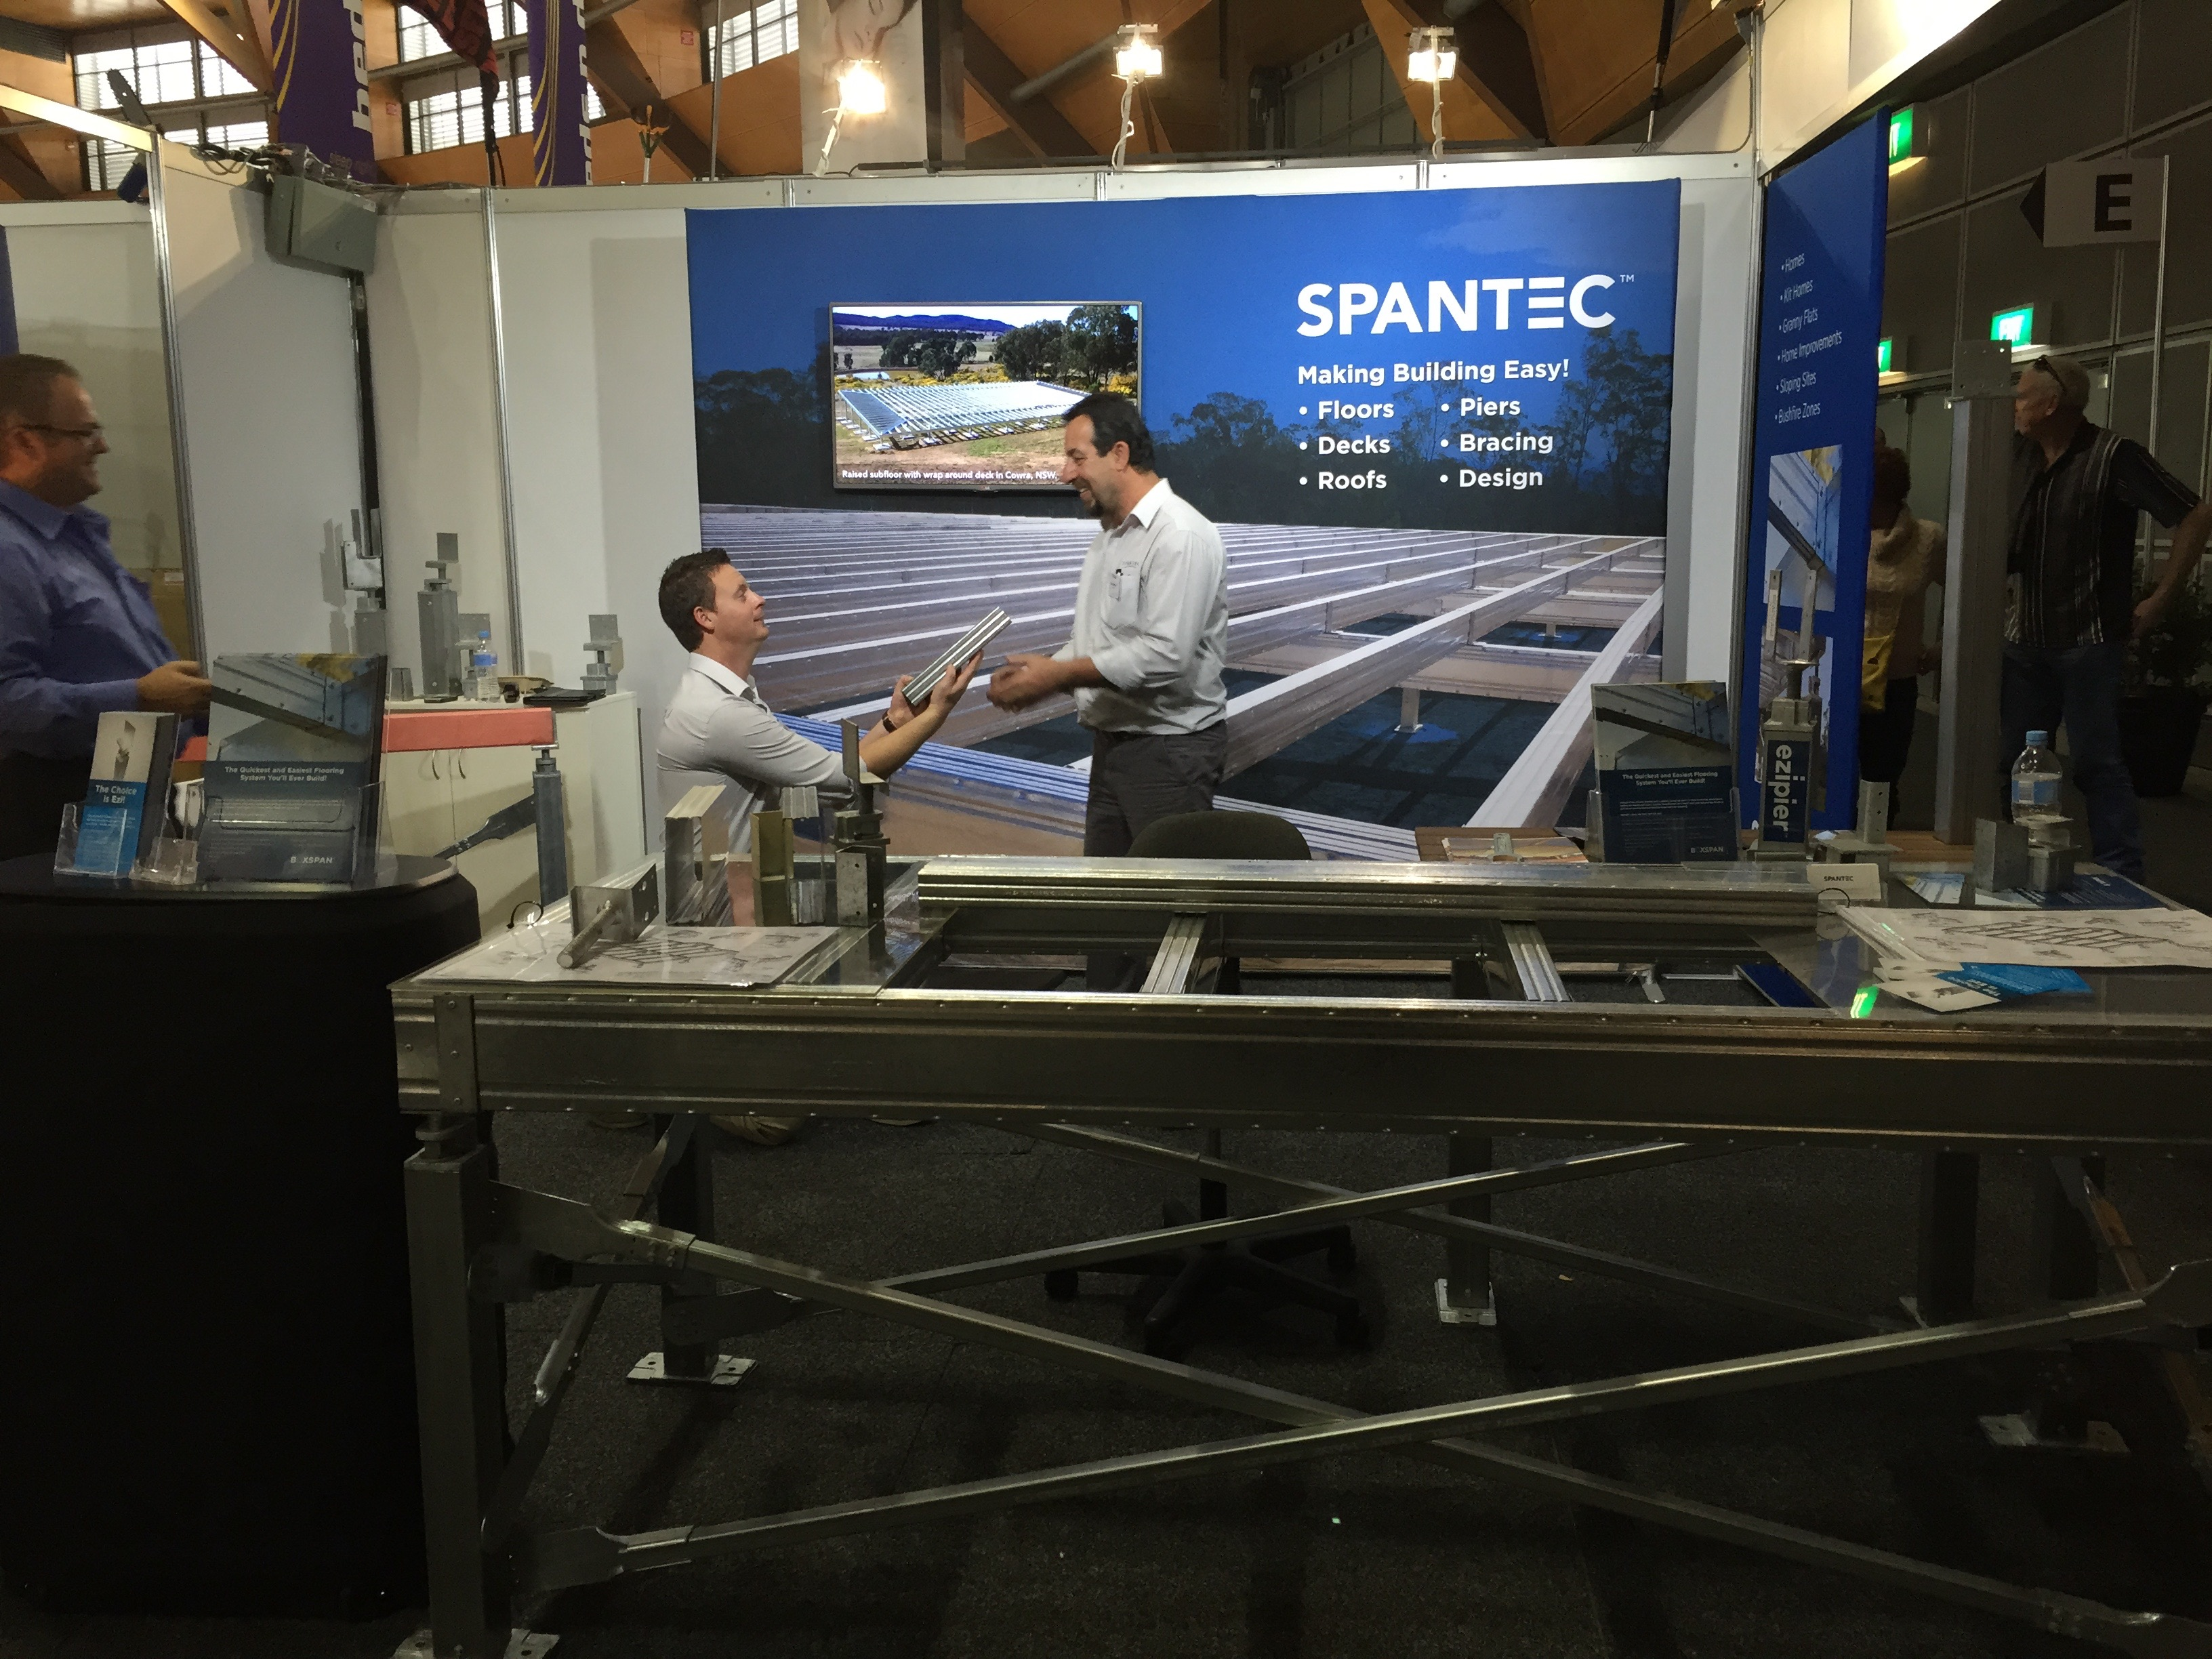 Salespeople Steve Targonski and Frank Paolucci at the Spantec stand which is a at trade shows across Australia total tool